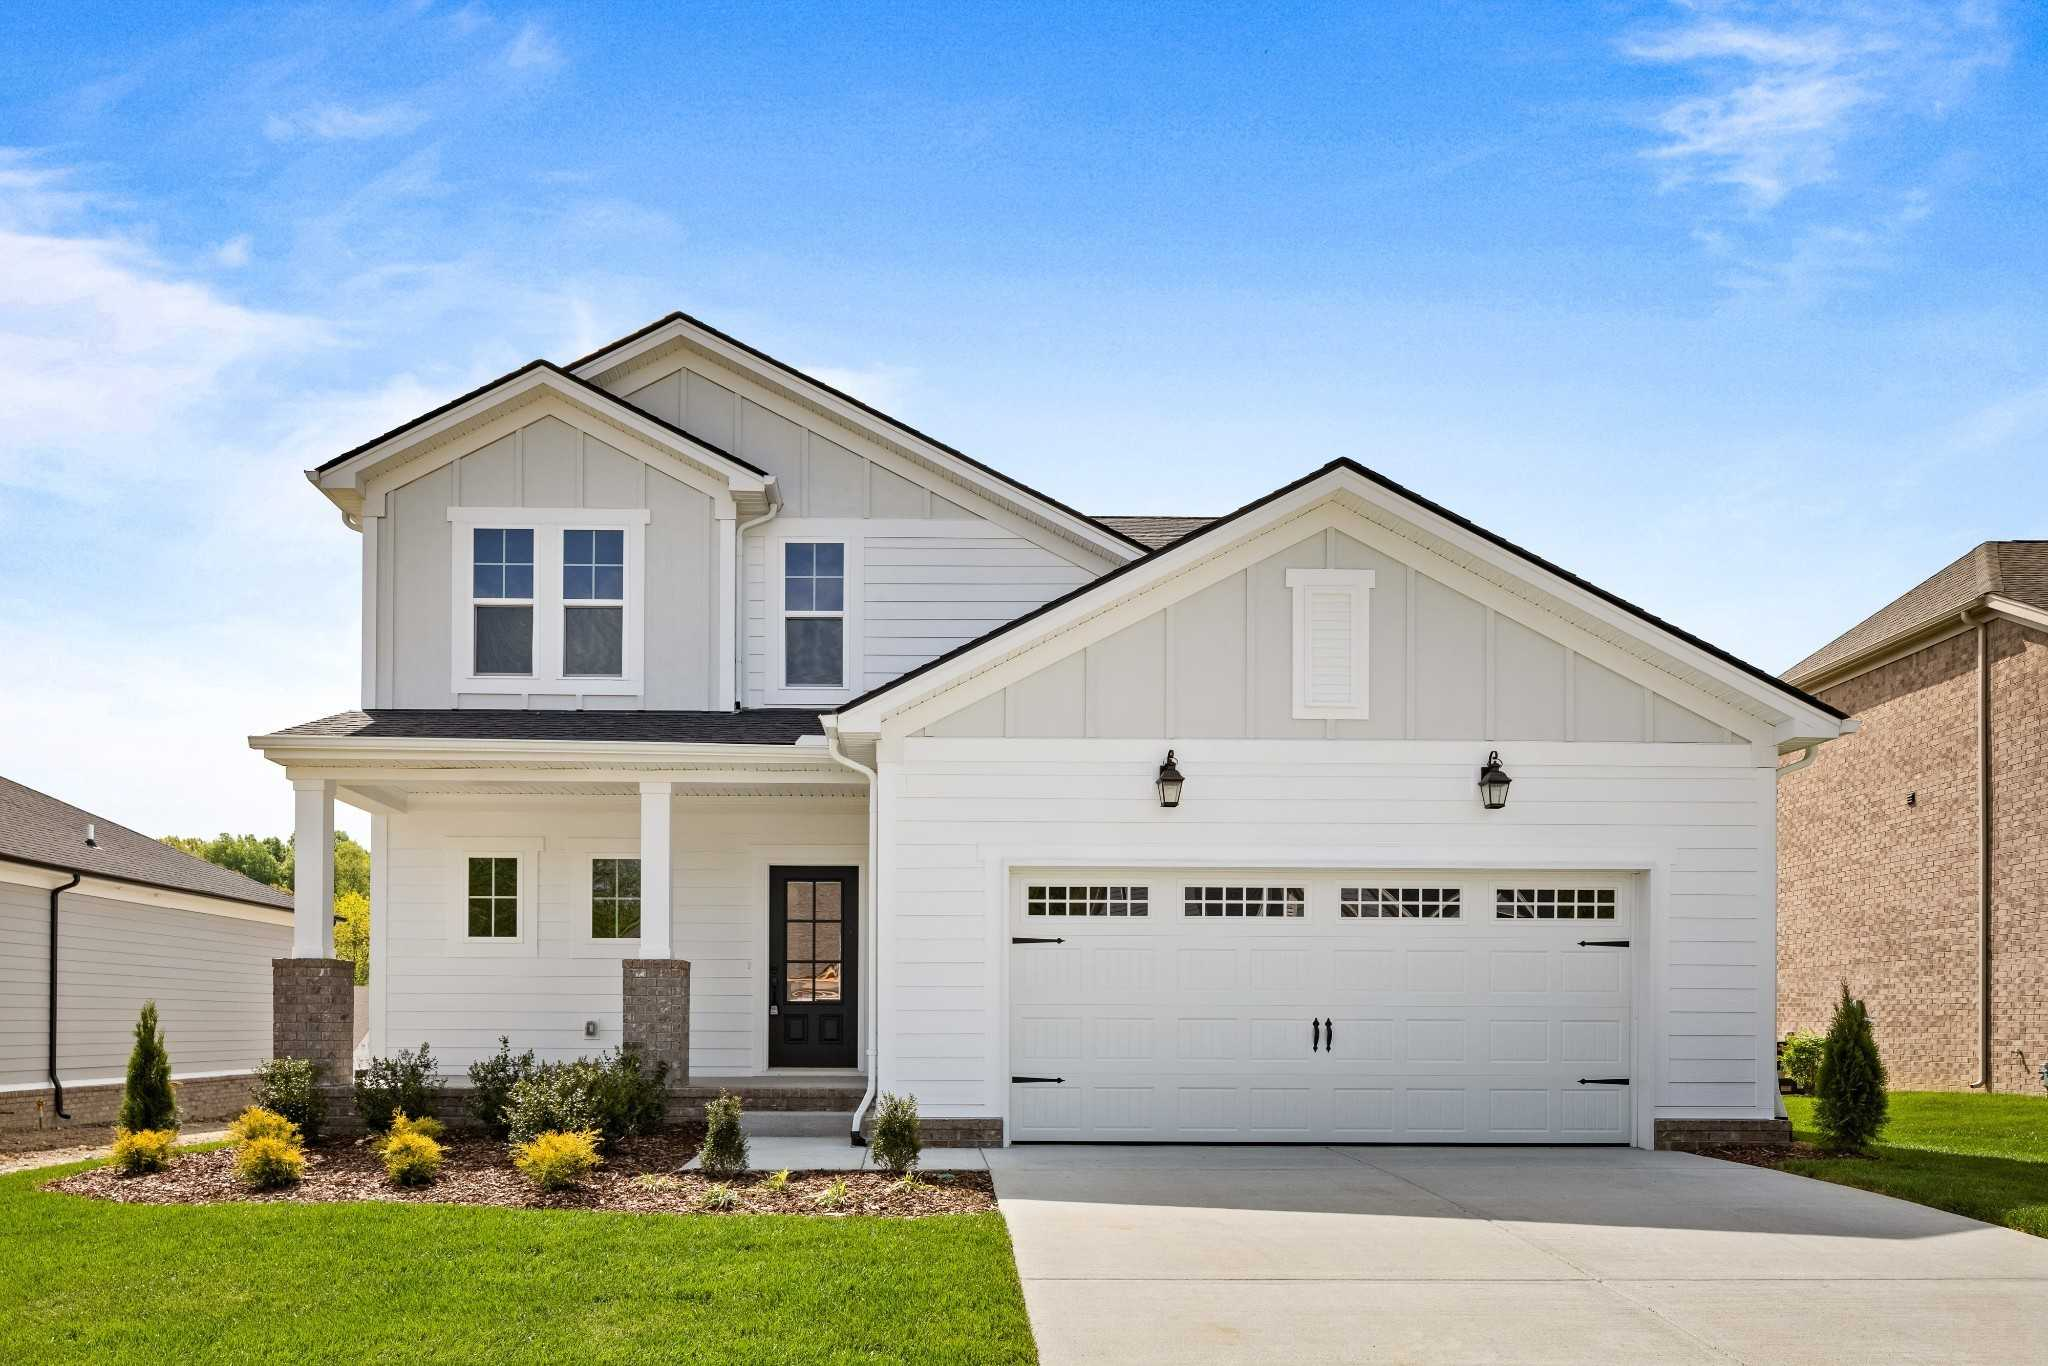 $409,900 - 4Br/4Ba -  for Sale in Palmers Crossing, White House